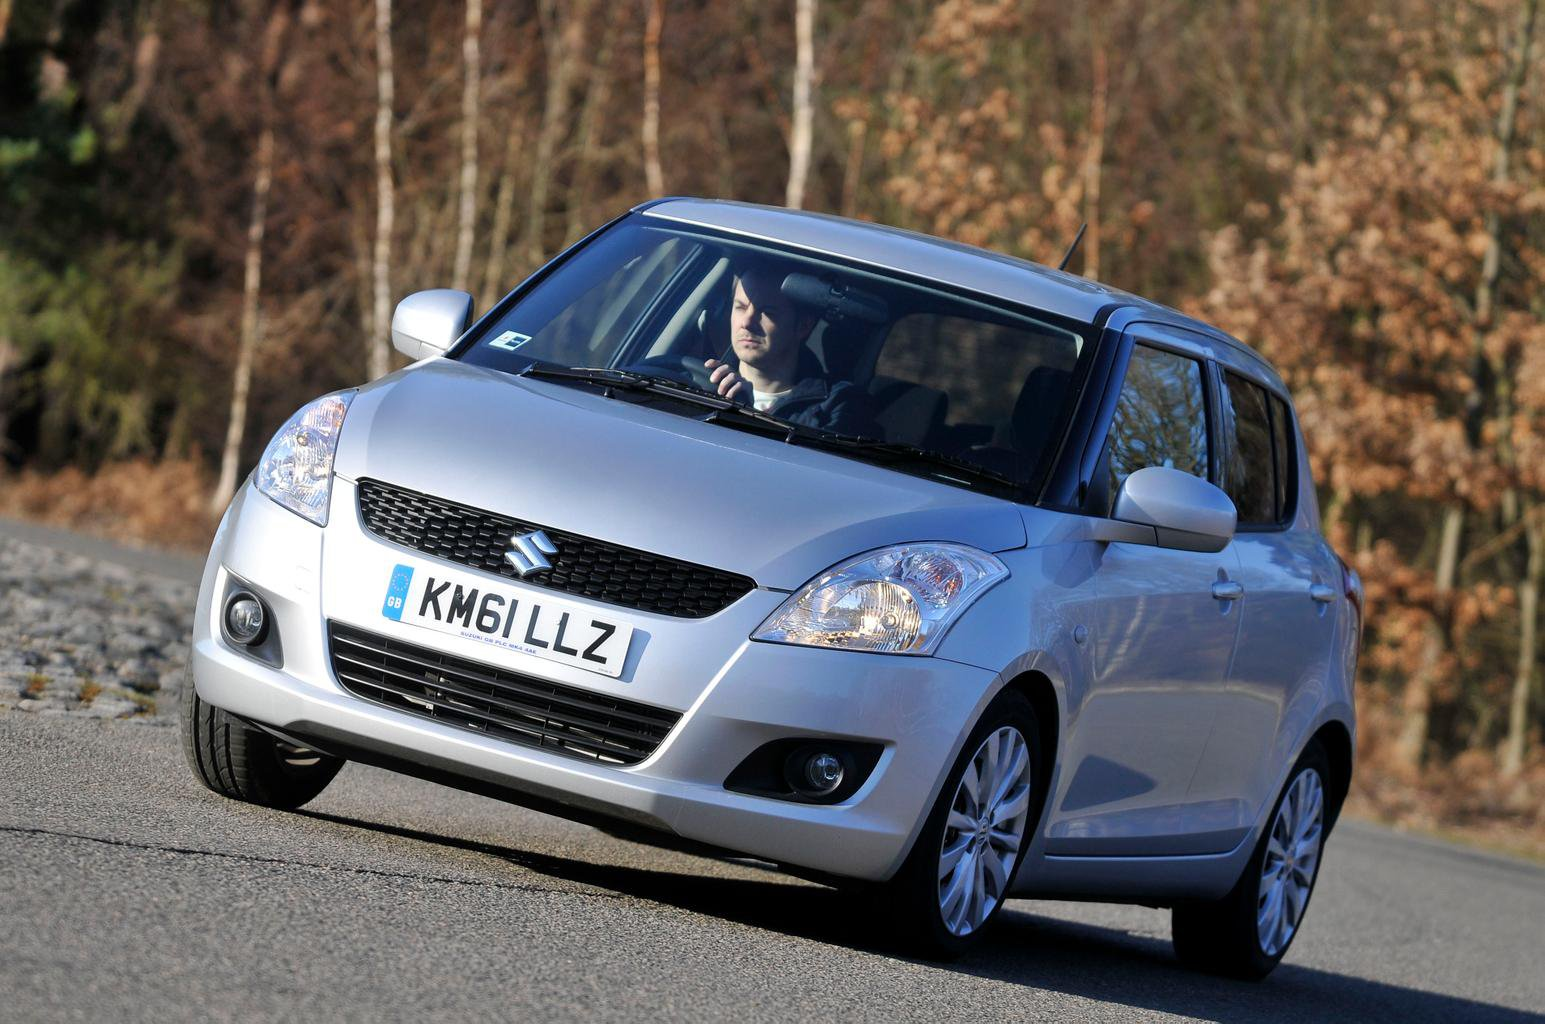 Used test: Chevrolet Aveo vs Skoda Fabia vs Suzuki Swift